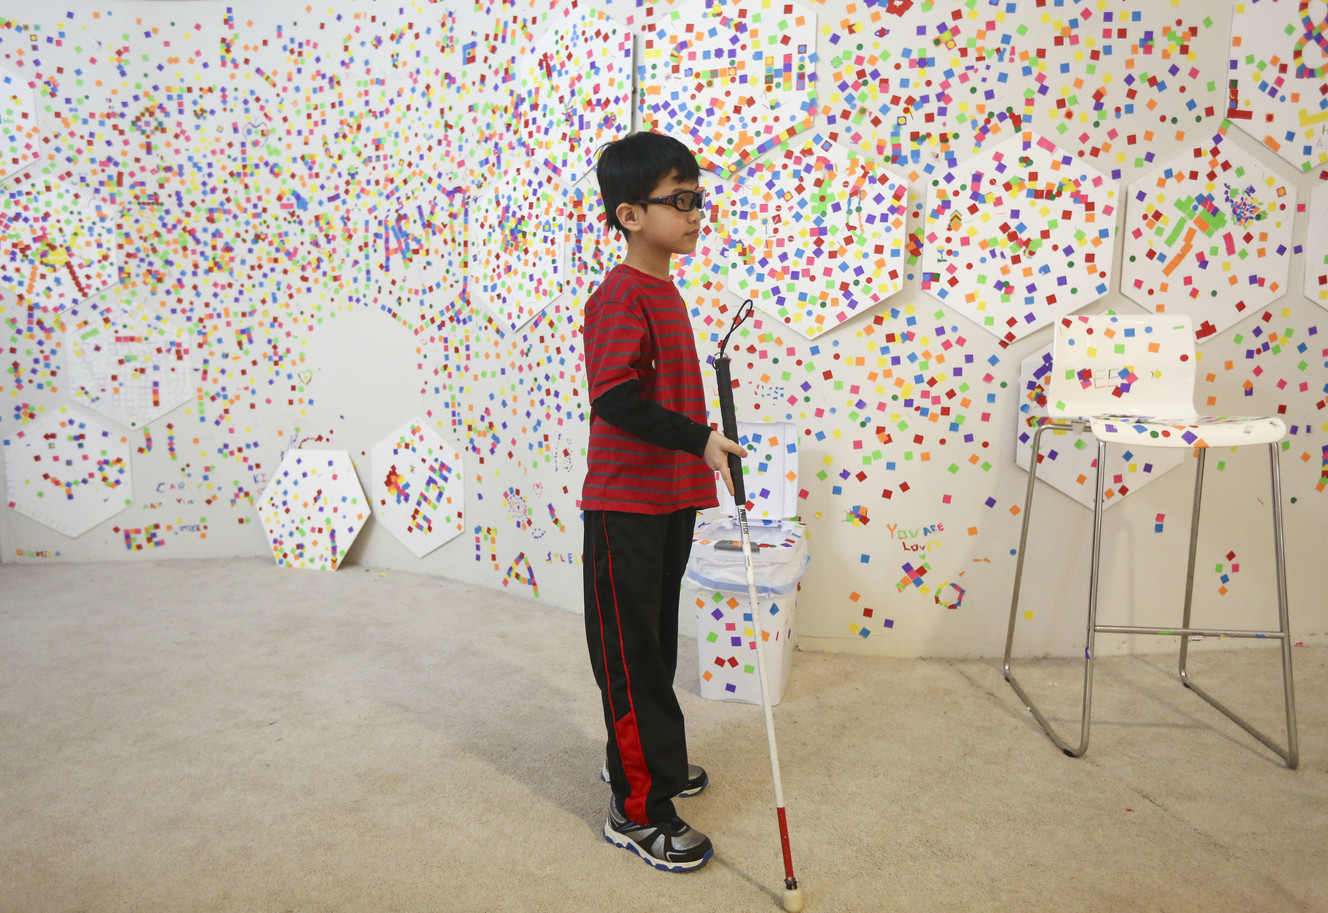 Blind Utah students experience interactive art exhibit 'dreamscapes